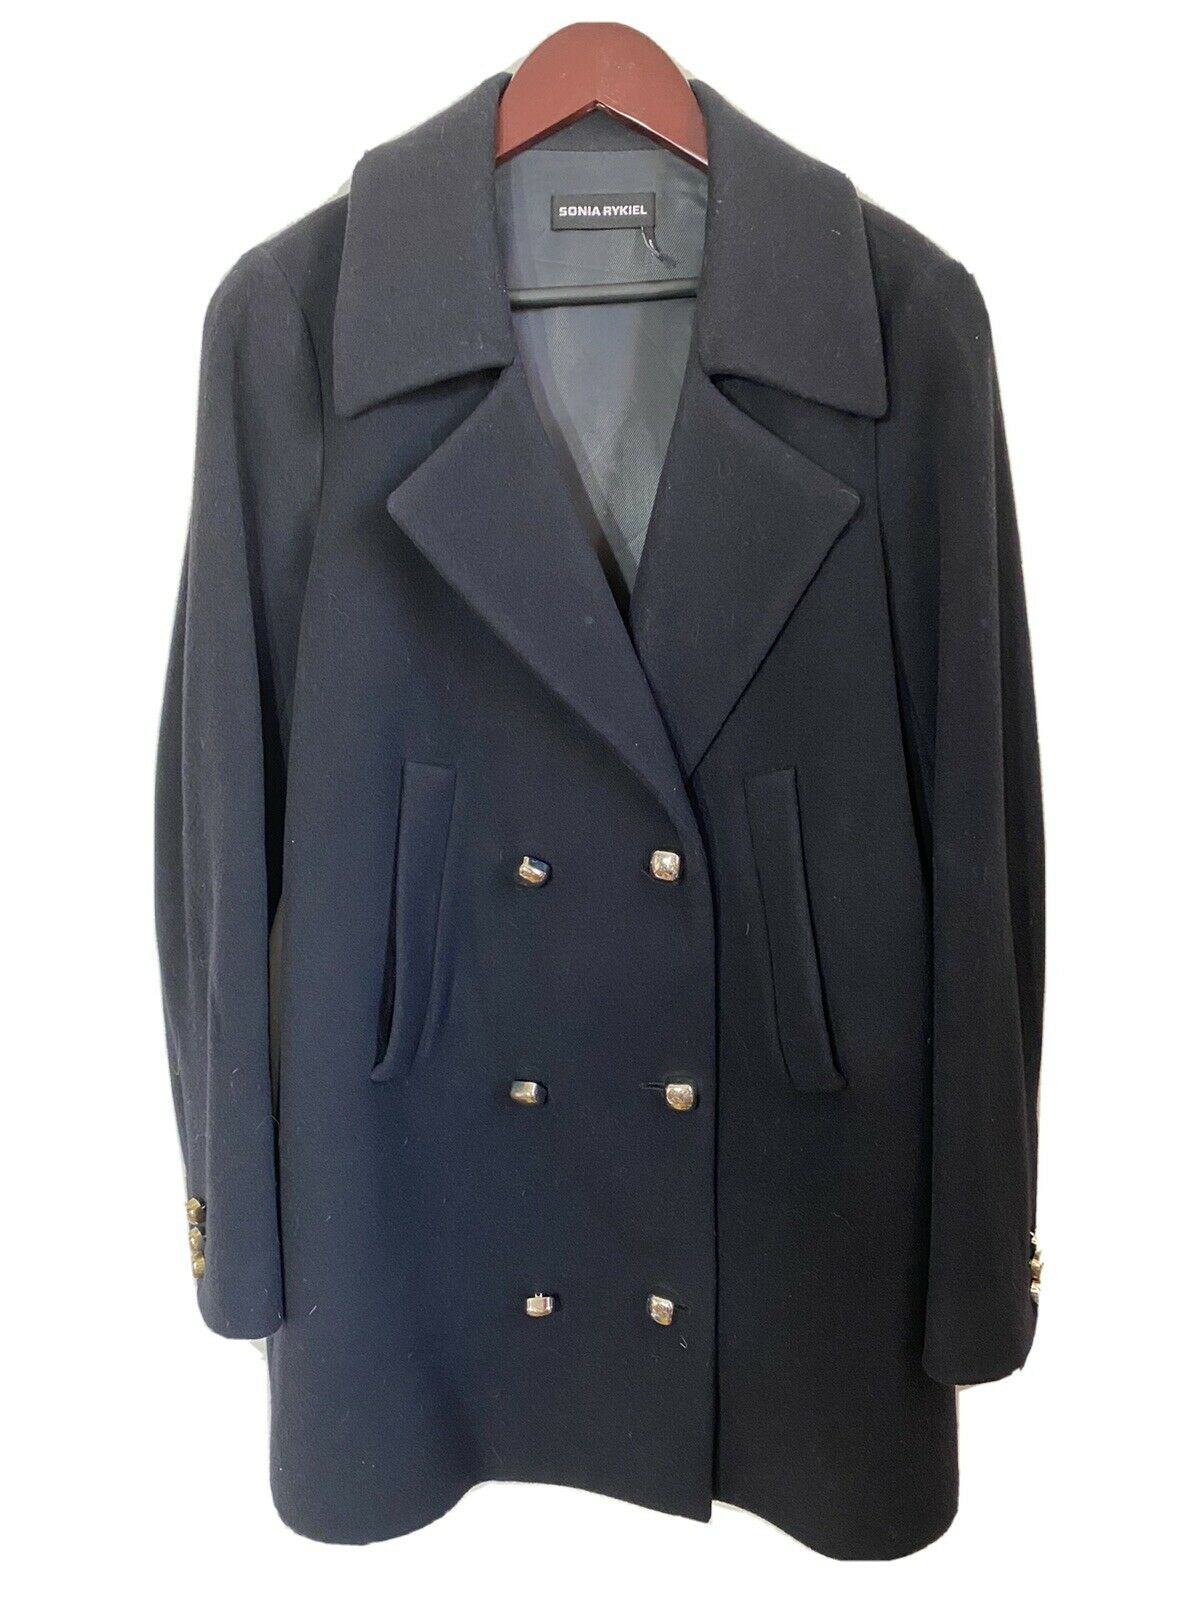 SONIA RYKIEL Black Wool Pea Coat Size 36/ Small